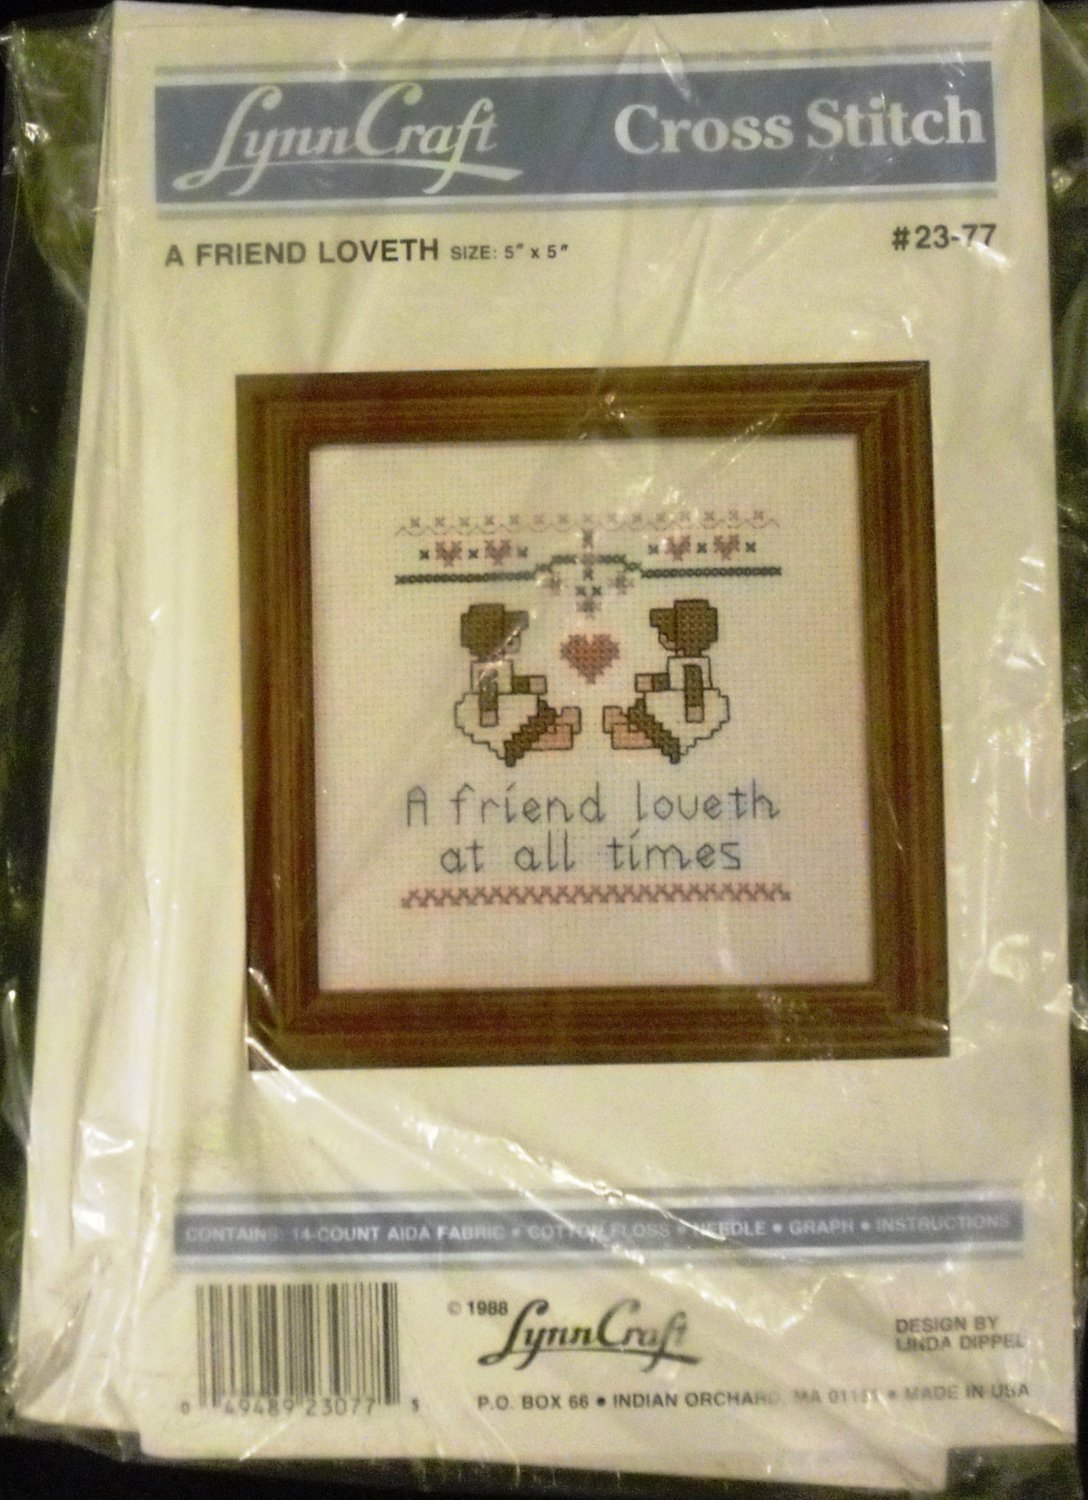 "Lynn Craft Cross Stitch ""A Friend Loveth"" #23-77"